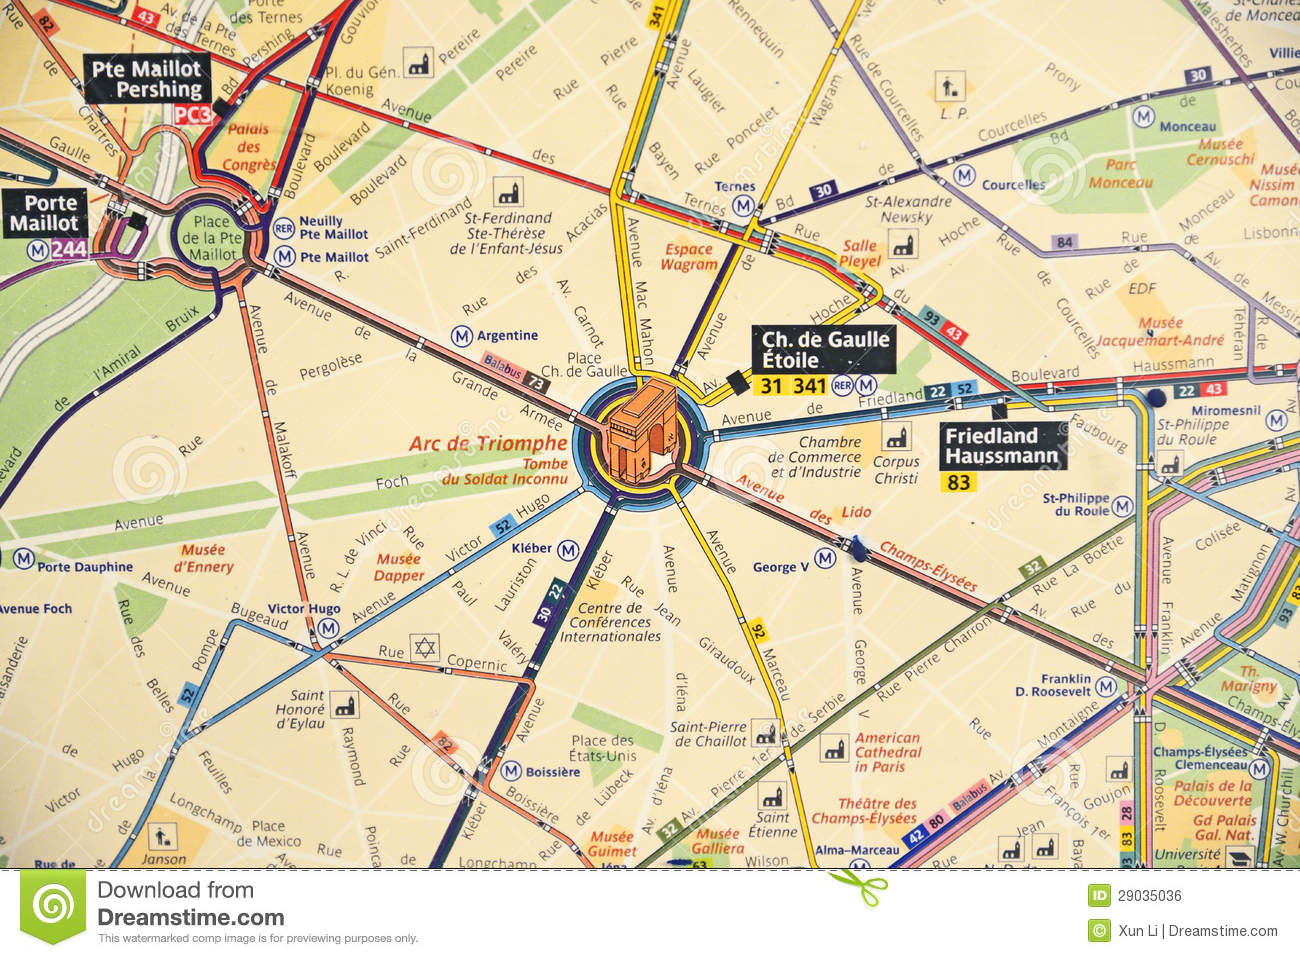 Subway map of paris stock photo. Image of building, transfer - 29035036